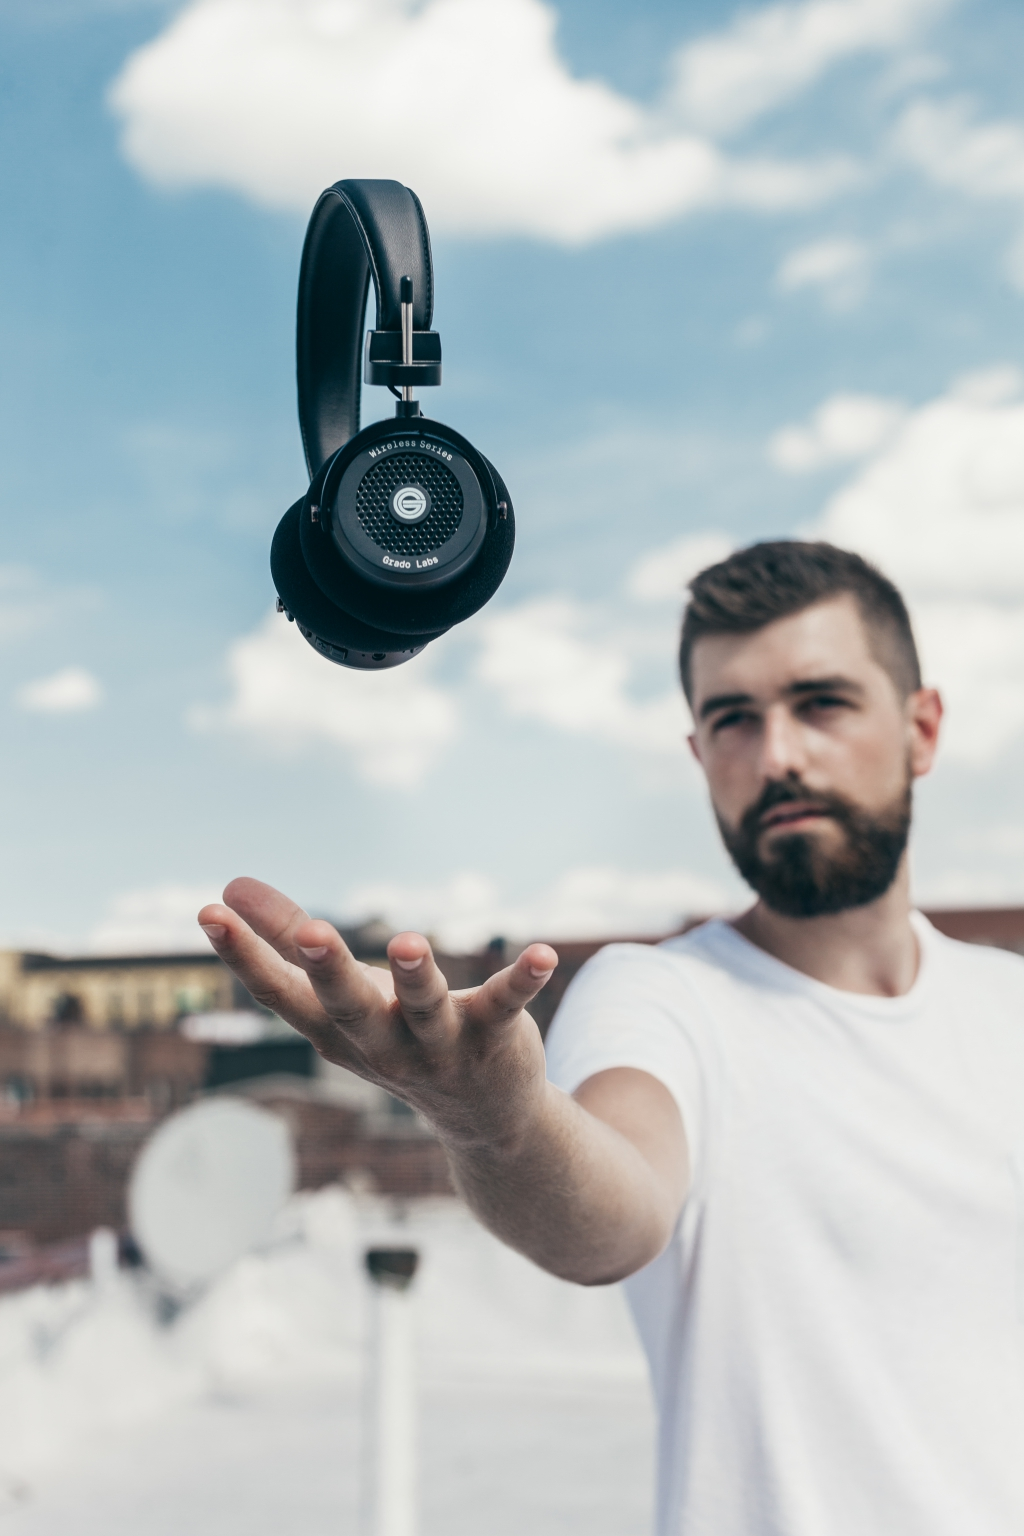 resize_01-Levitating-Wireless-Grado-GW100-Headphones-by-Erick-Urgiles-7